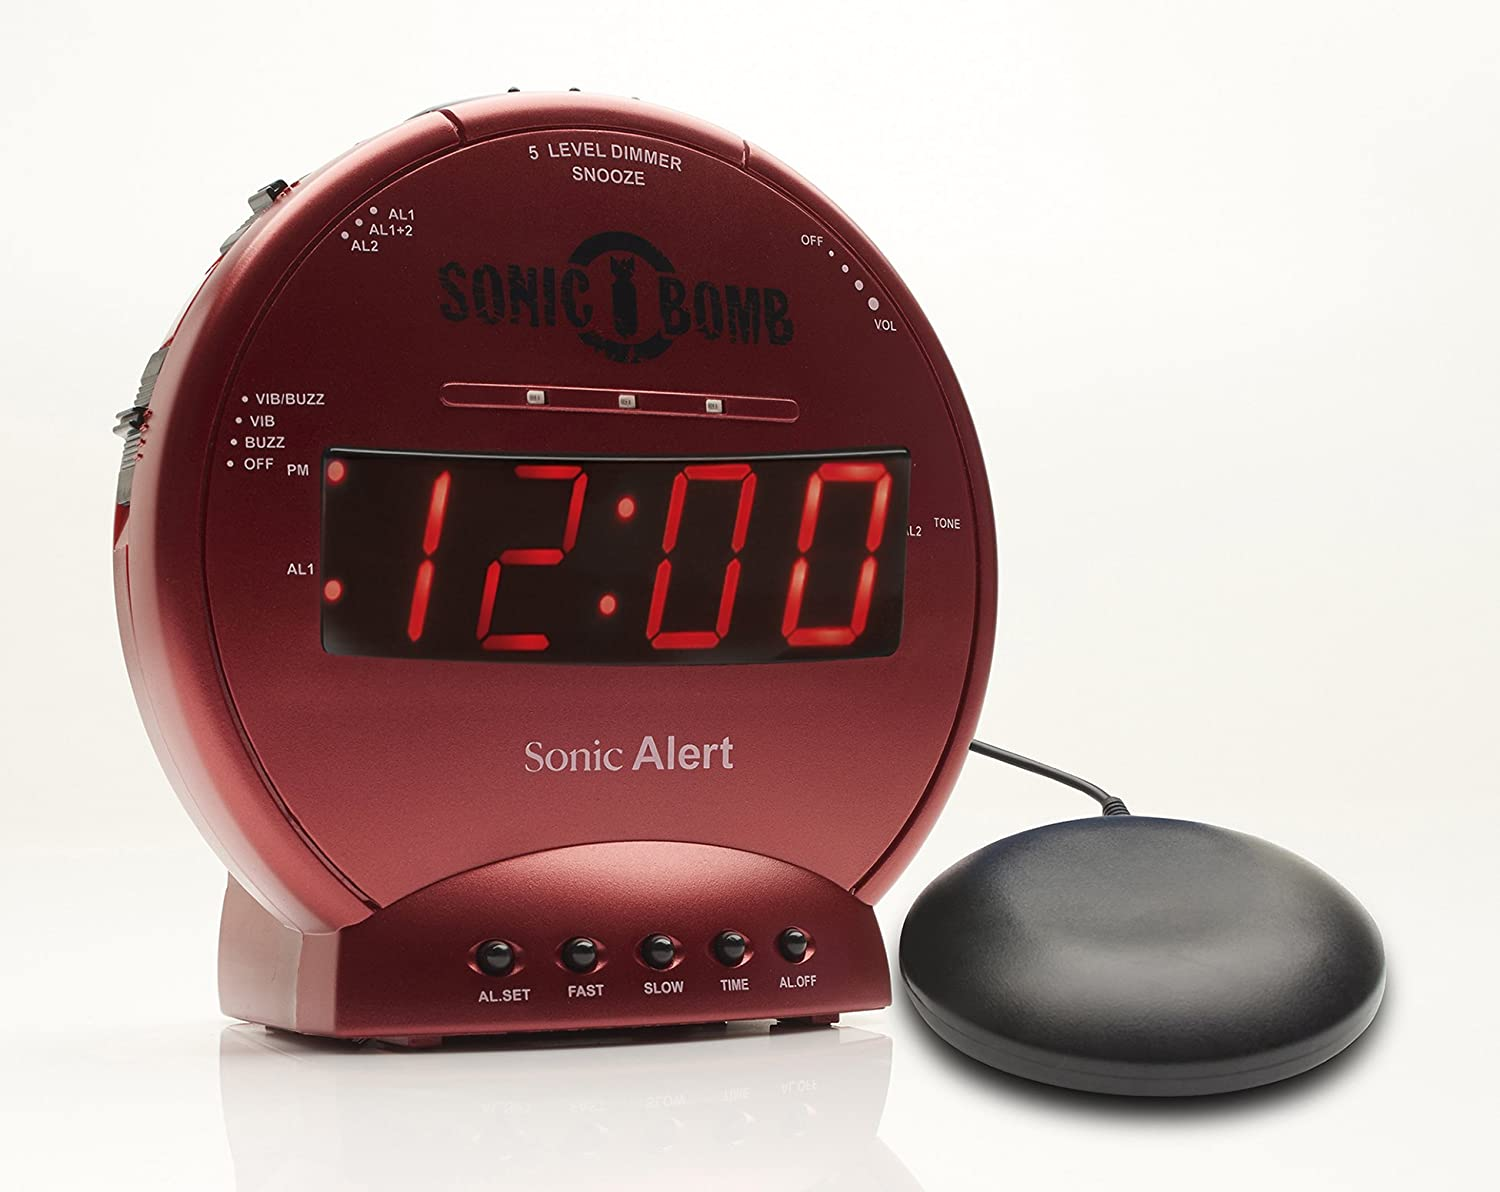 Sonic Bomb Loud Dual Alarm Clock with Vibrating Bed Shaker Turquoise - SBB500SST Sonic Alert